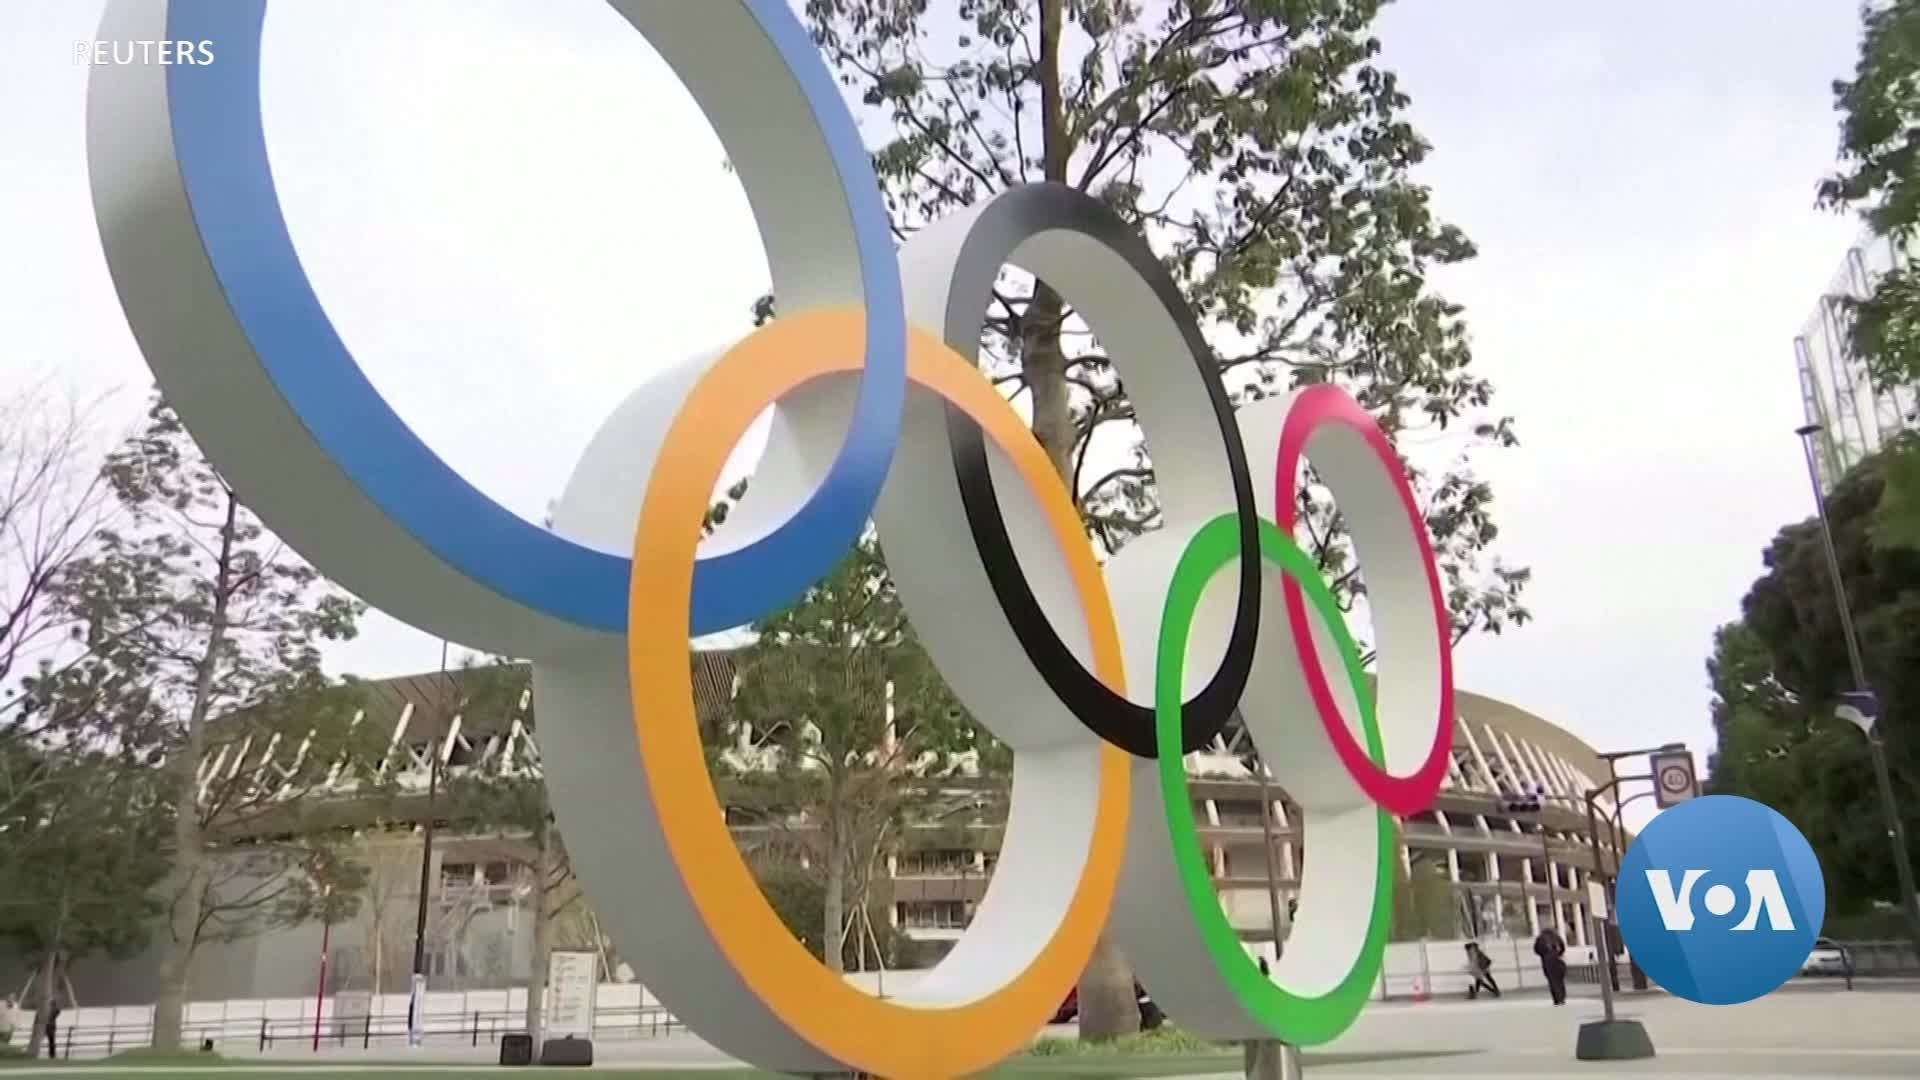 2020 Summer Olympics Officially Moved to 2021